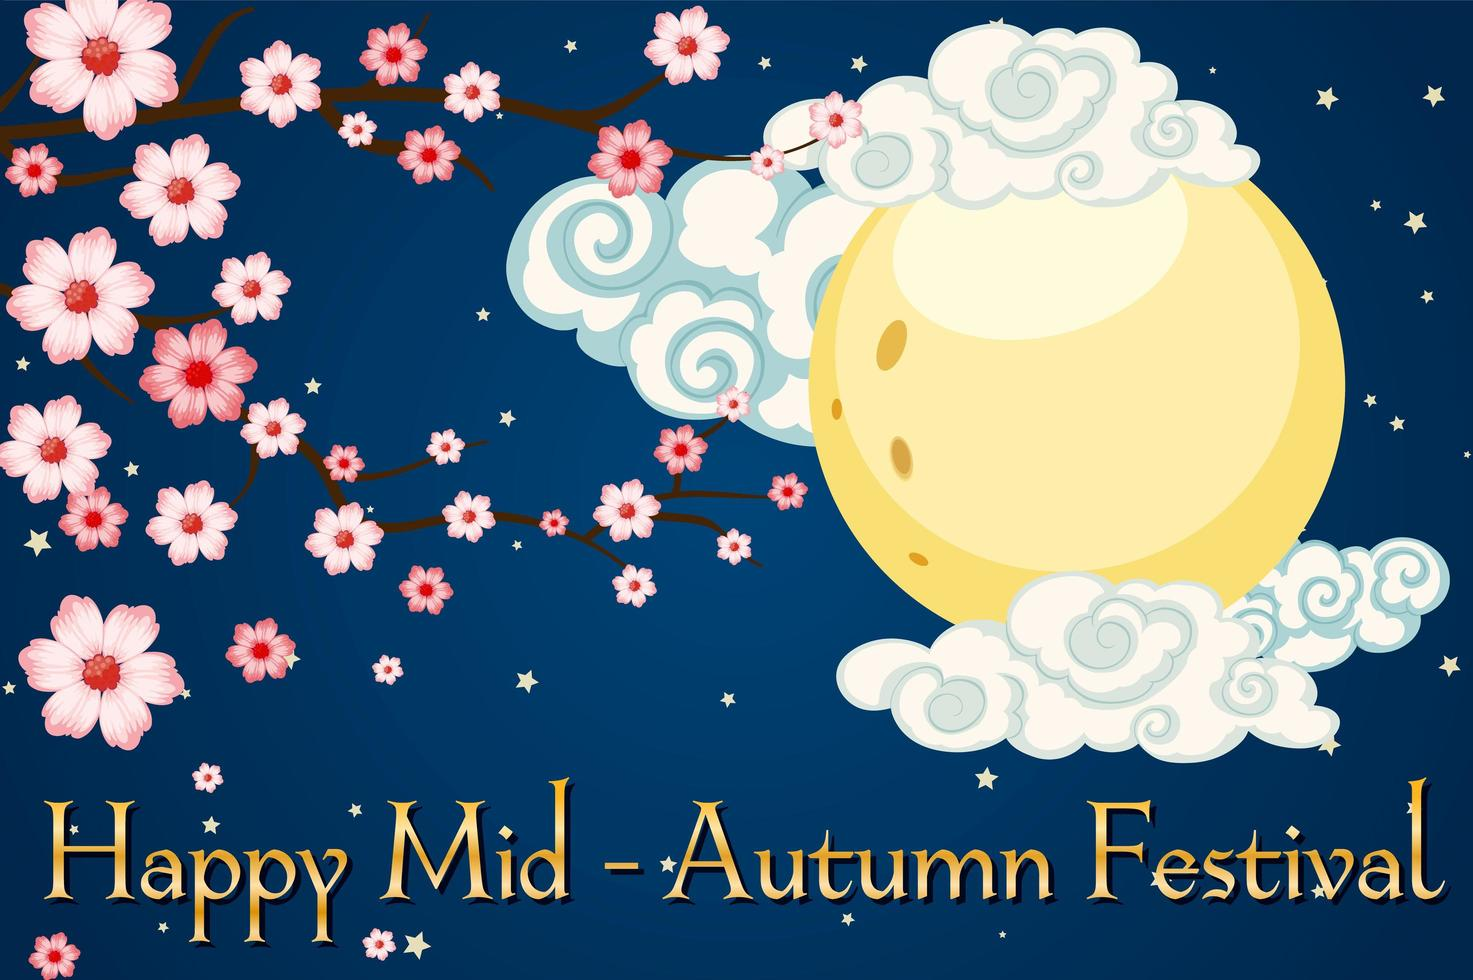 Mid-autumn festival banner background vector